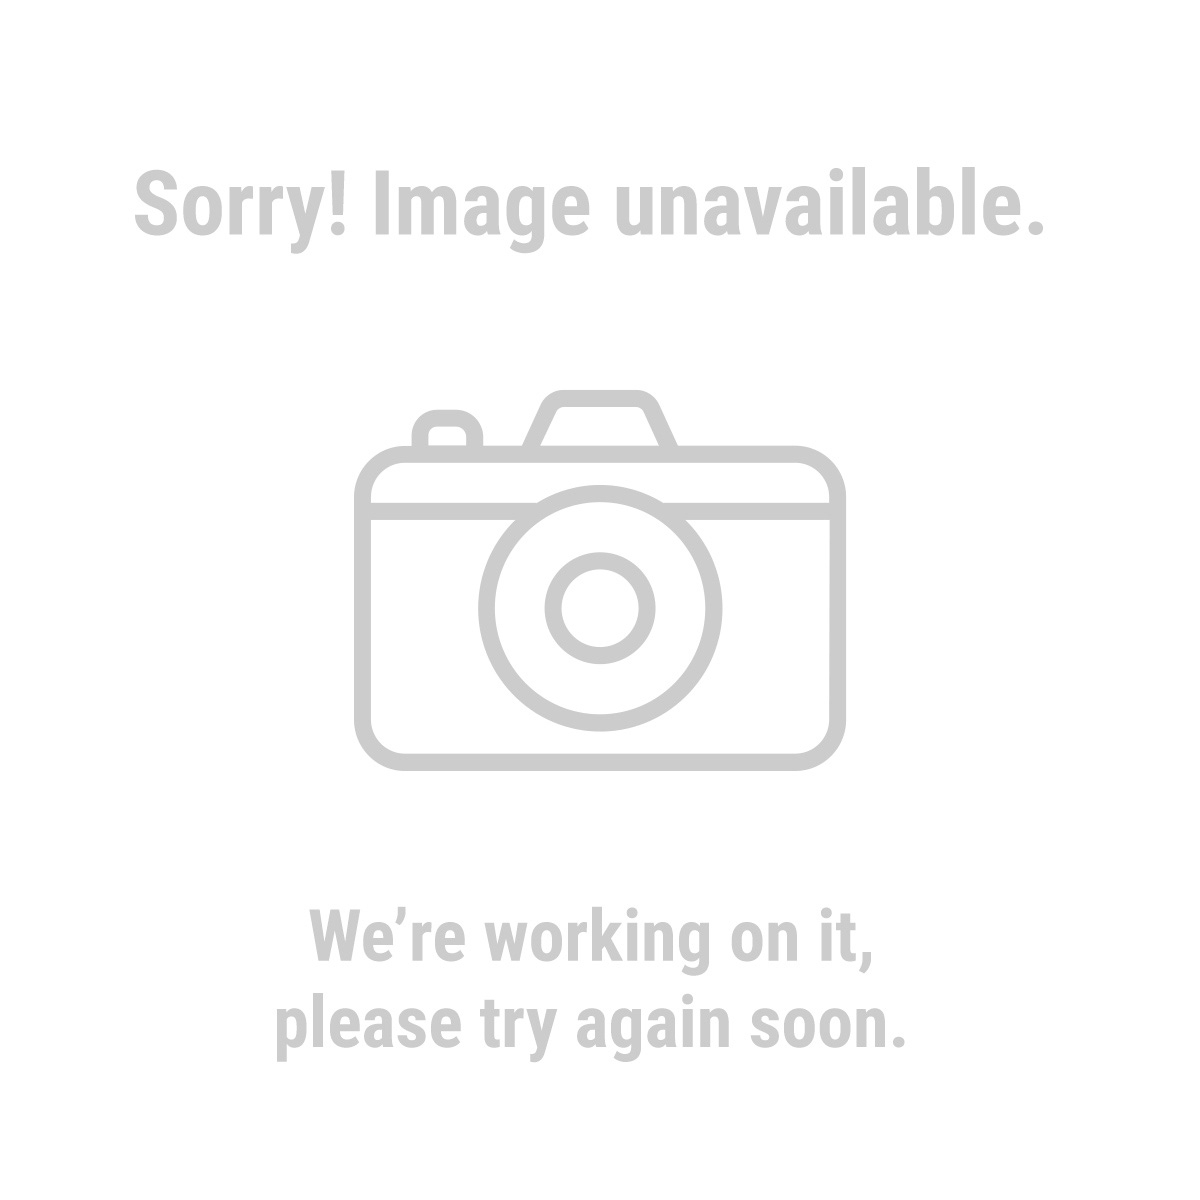 "Pittsburgh 39723 1/2"" Socket Rail"